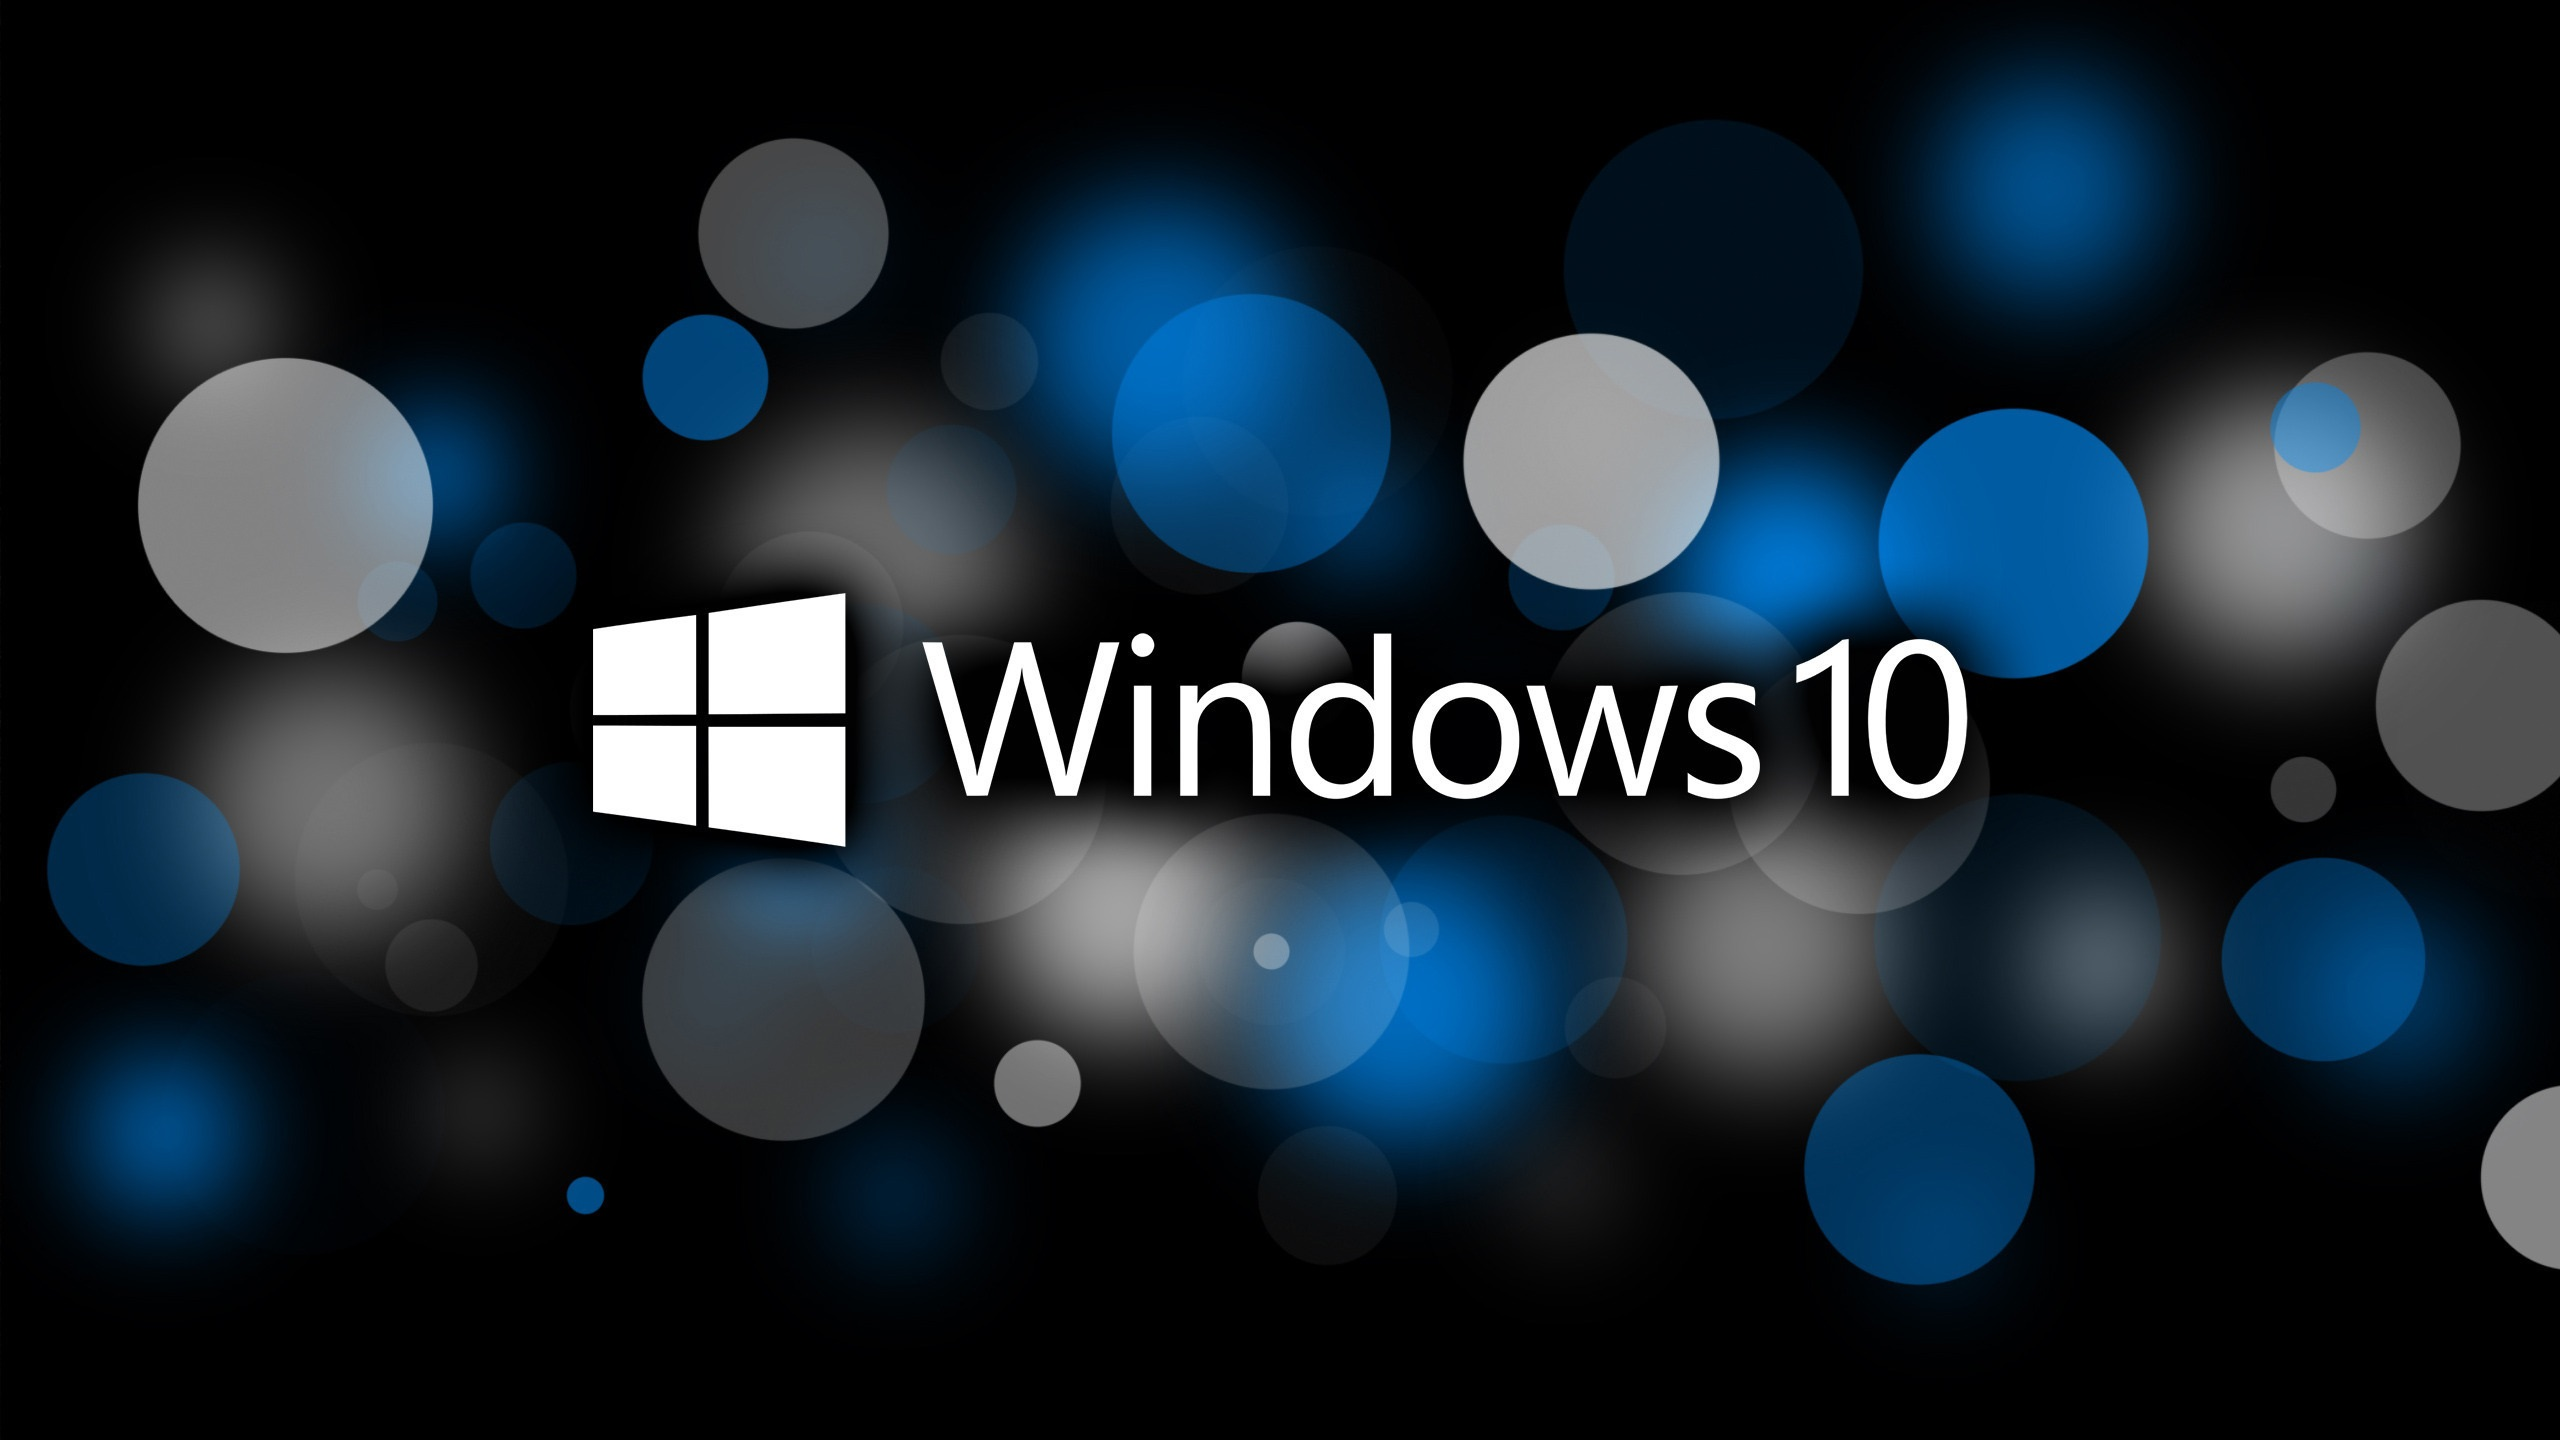 Microsoft-Windows-10-system-logo-circles-creative-design_2560x1440